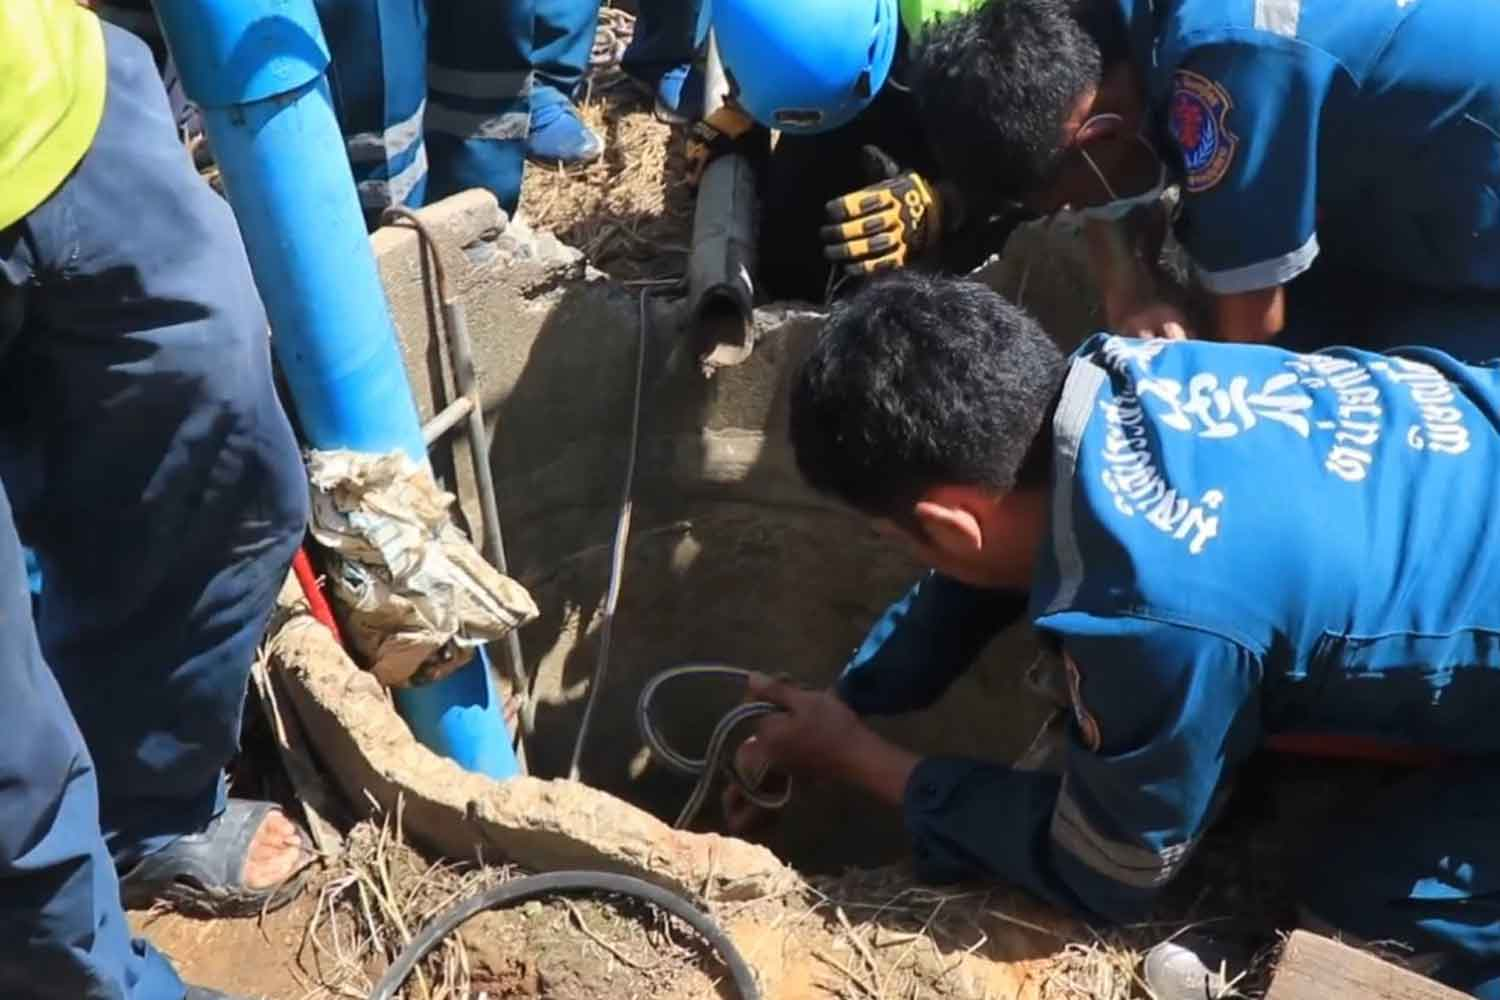 Rescuers drop a rope down the well to bring up the two unconscious men, father and  son, in Phitsanulok on Wednesday. The two men died. Neighbours believed they inhaled hydrogen sulfide. (Photo: Chinnawat Singha)